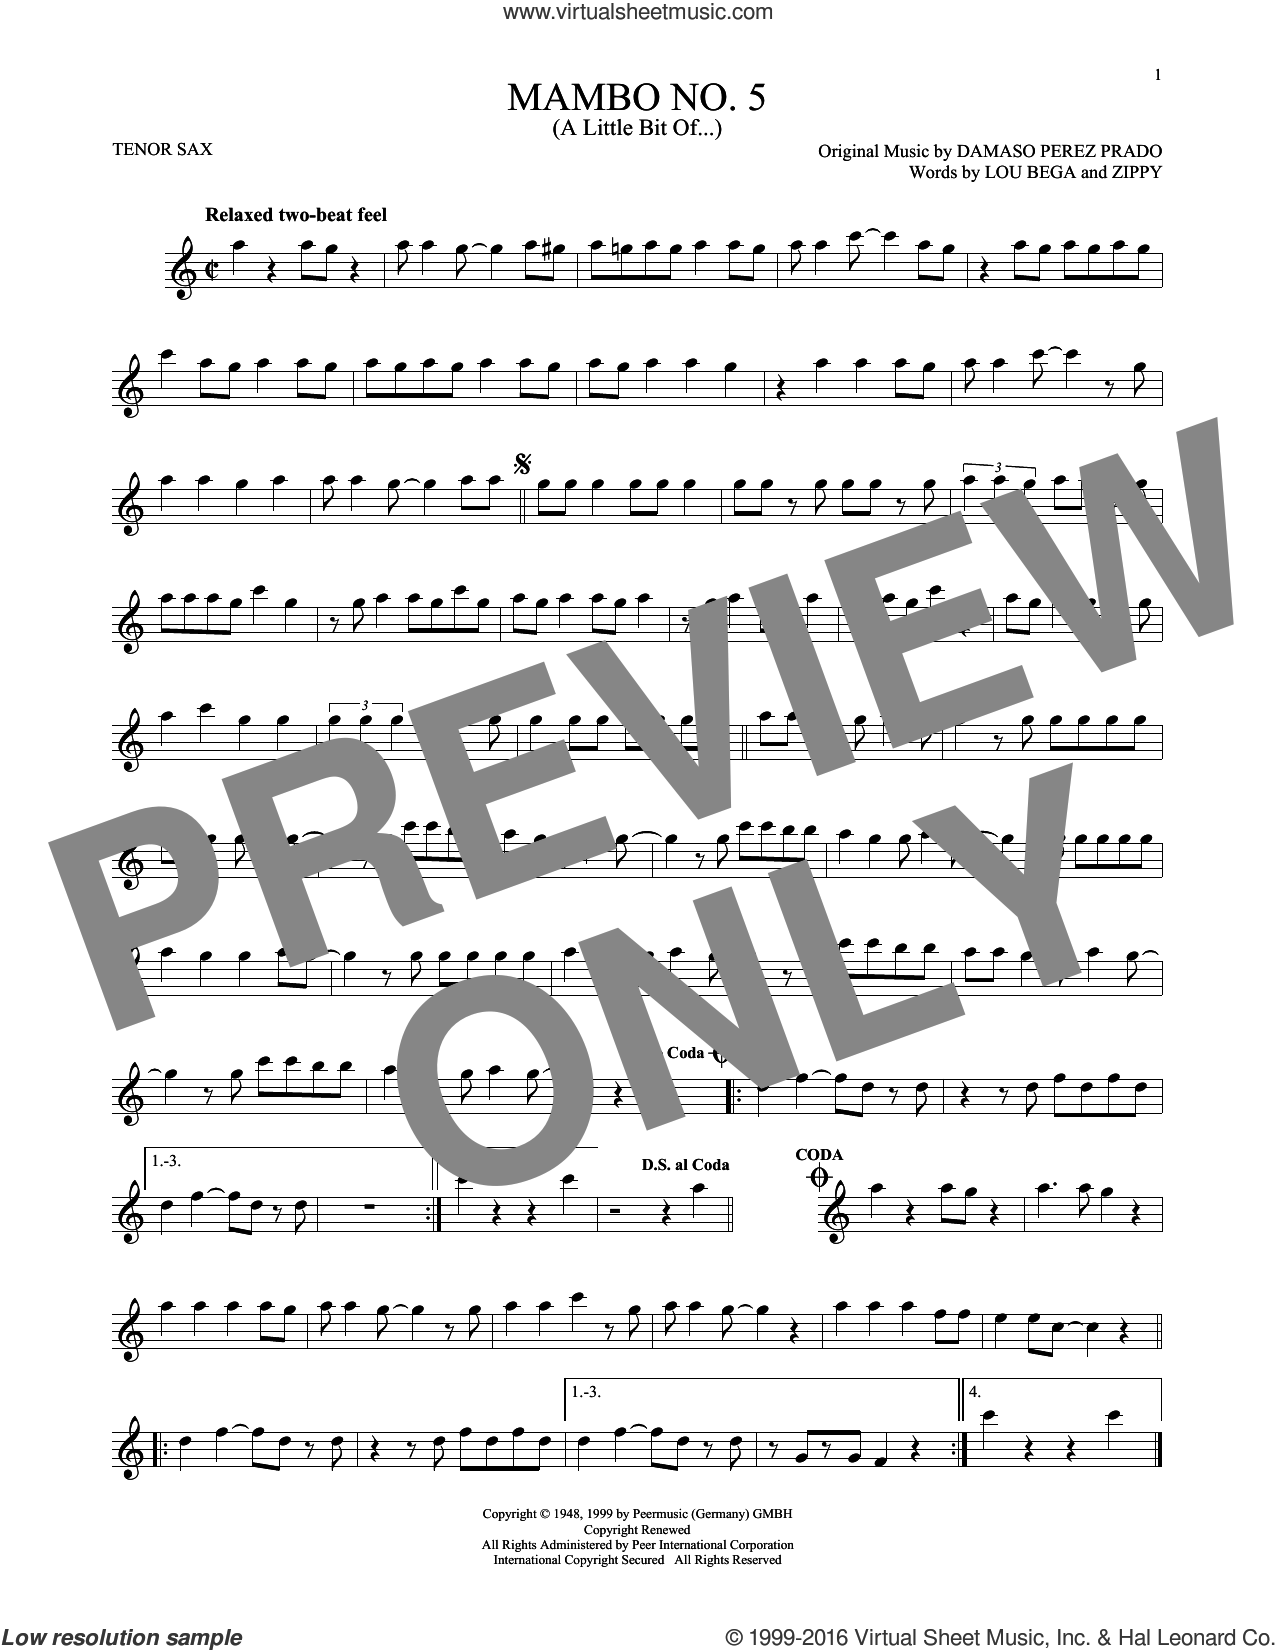 Mambo No. 5 (A Little Bit Of...) sheet music for tenor saxophone solo by Lou Bega and Damaso Perez Prado, intermediate. Score Image Preview.